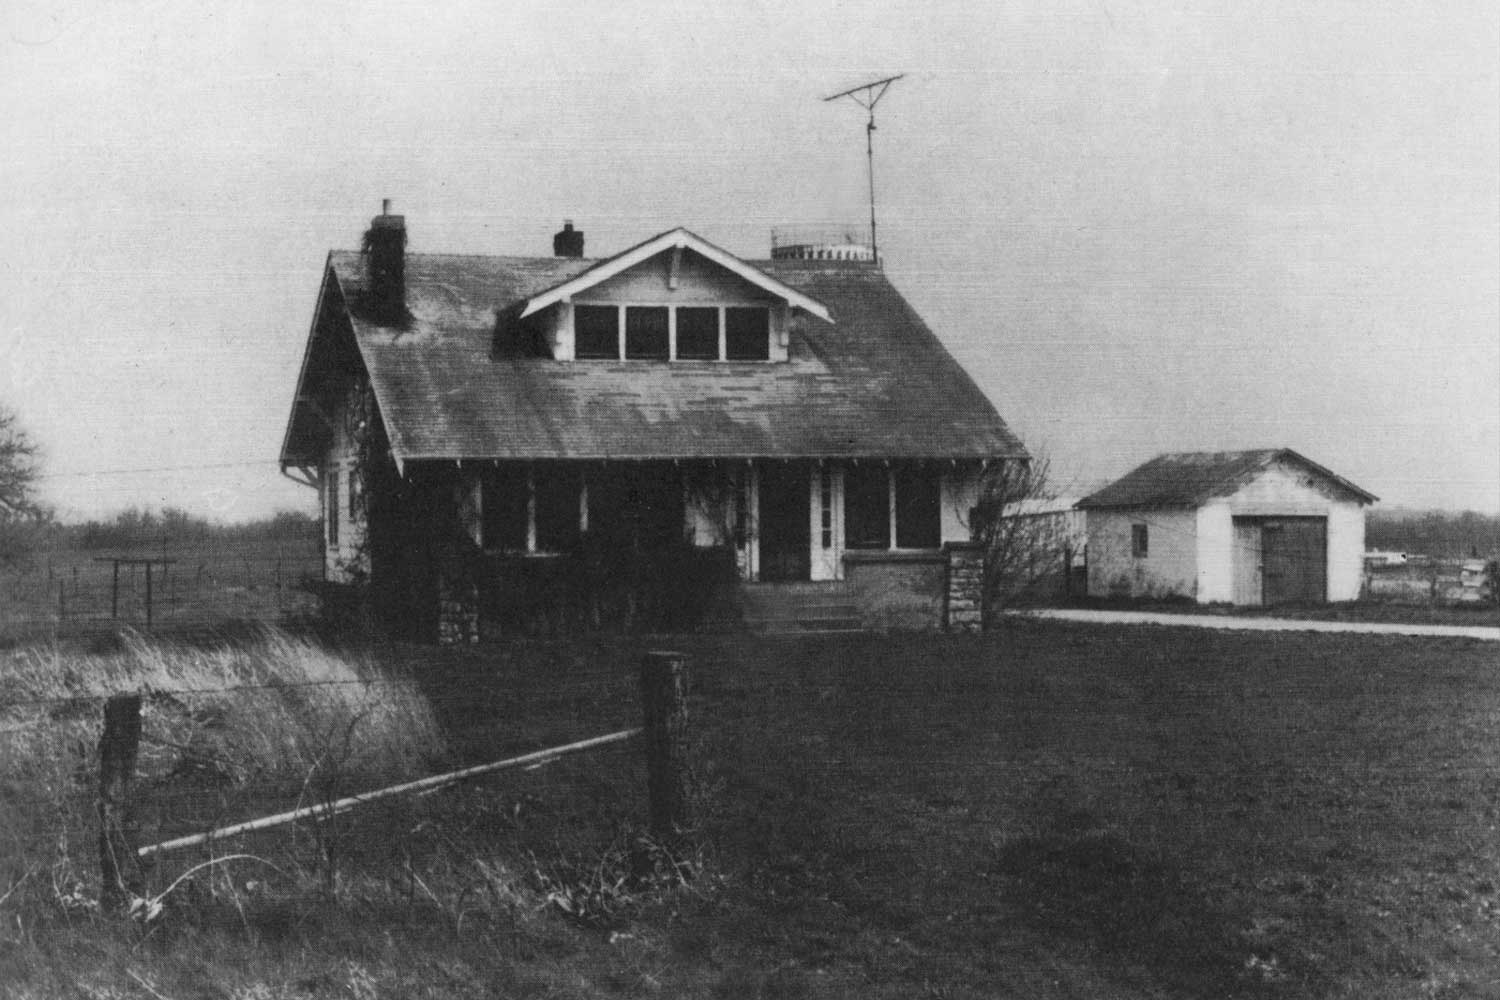 """According to biographer Marshall Terrill, """"A period photograph of the Thomson homestead on the outskirts of Slater, Missouri. The home was owned by Steve McQueen's great-uncle Claude Thomson [1873–1957], a prosperous hog farmer. Over time Claude grew to love Steve like a son, filling the role of surrogate father in the absence of the real deal."""" (Image Credit: The Slater Main Street News Collection / Courtesy of Marshall Terrill / appears in """"Steve McQueen: The Life and Legend of a Hollywood Icon"""" [2010] / medium.com)"""